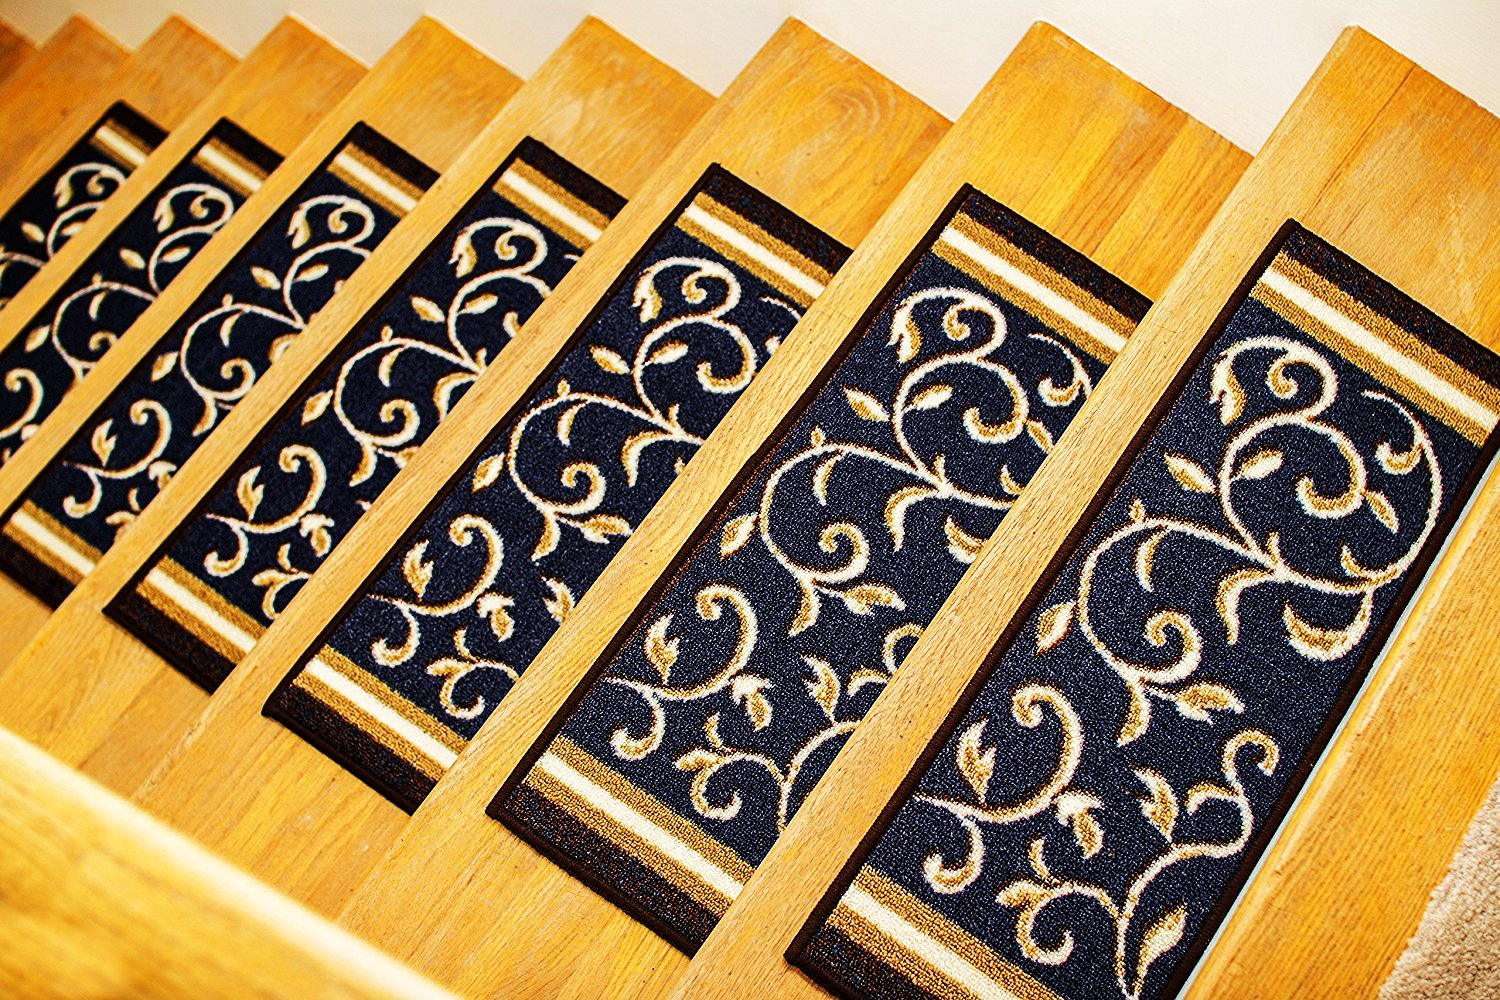 Gloria Rug Skid-Resistant Rubber Backing Gripper Non-Slip Carpet Stair Treads - Washable Stair Mat Area Rug (SET OF 7), 8.5'' x 26'', Navy Blue Floral Design